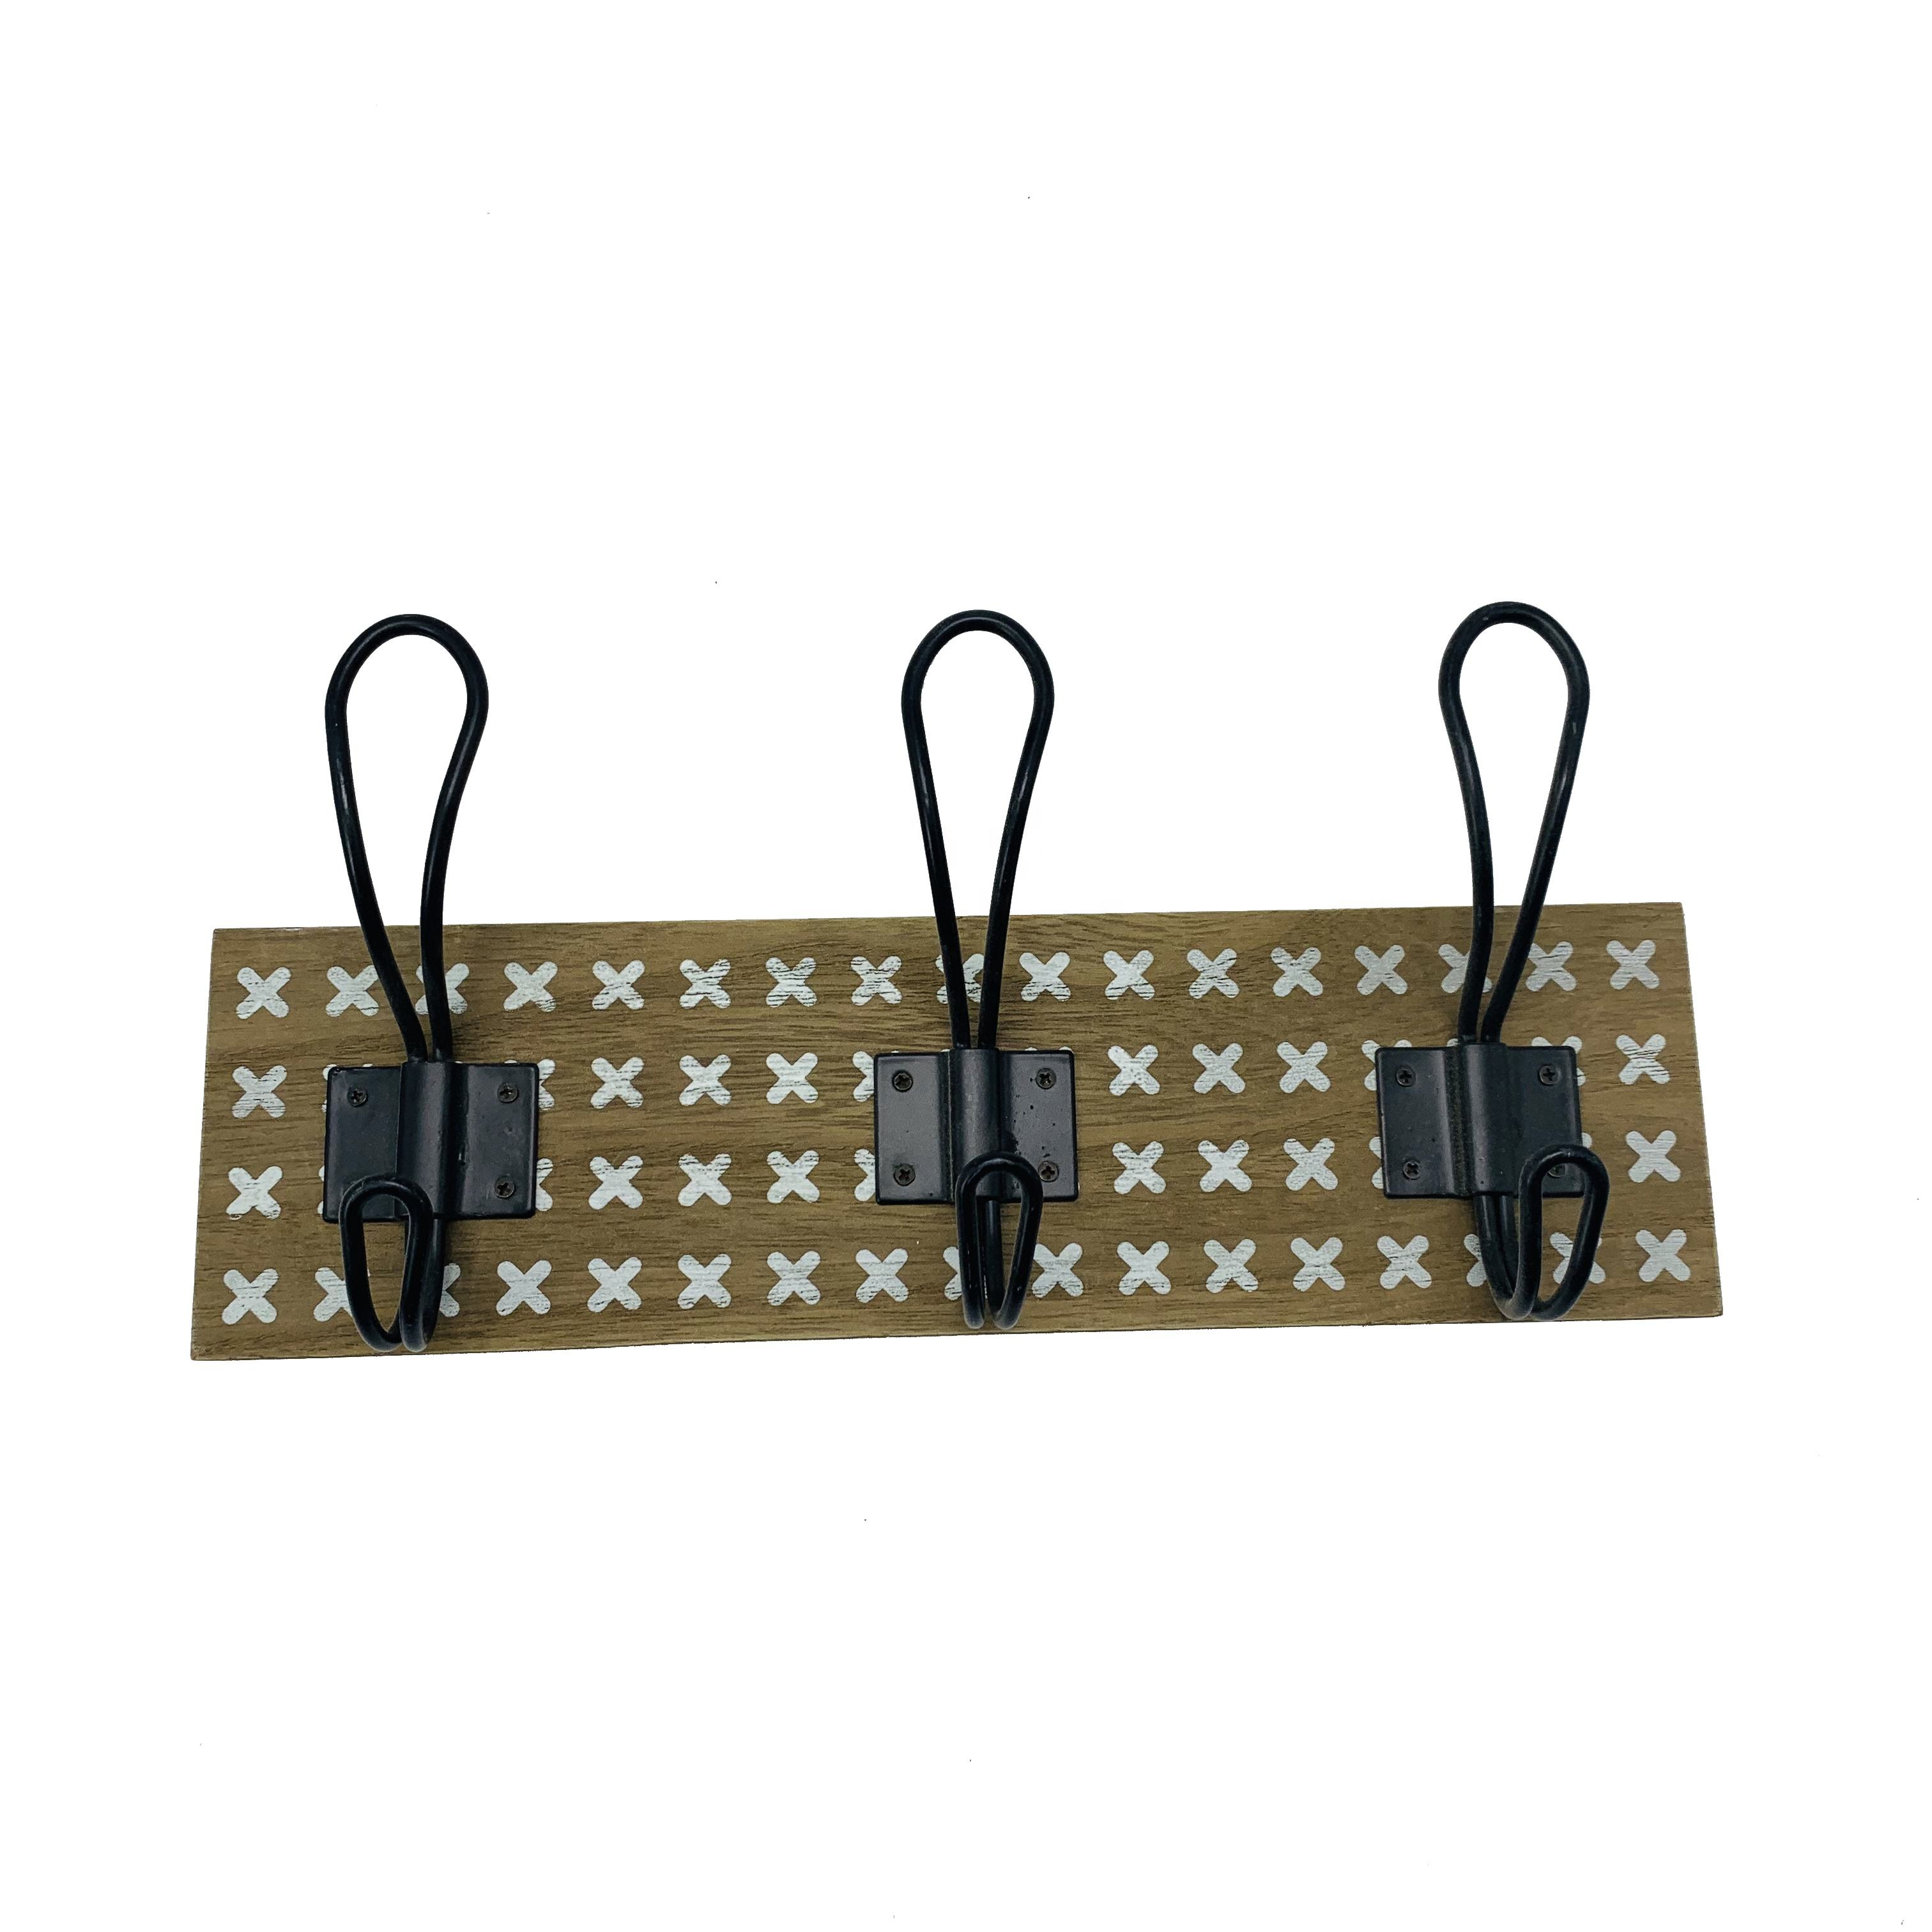 Decorative Wall Hanging Wooden Clothes Rack Hooks